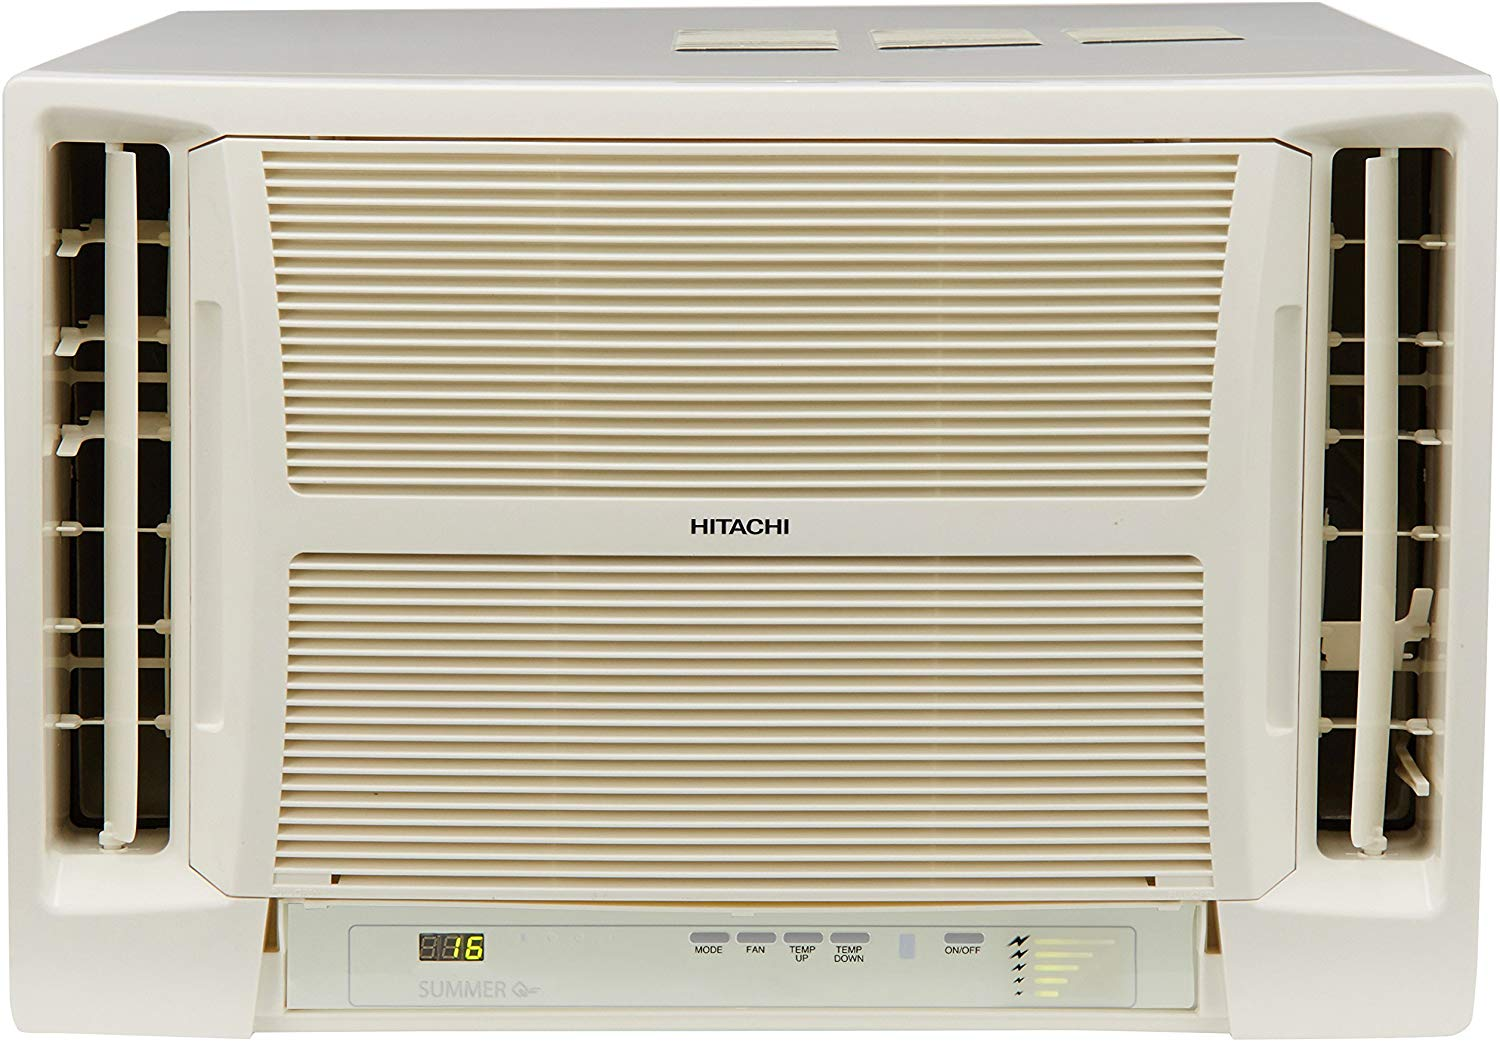 Hitachi 1.1 Ton 5 Star Window AC (RAV513HUD Summer QC, White) get best offers deals free and coupons online at buythevalue.in